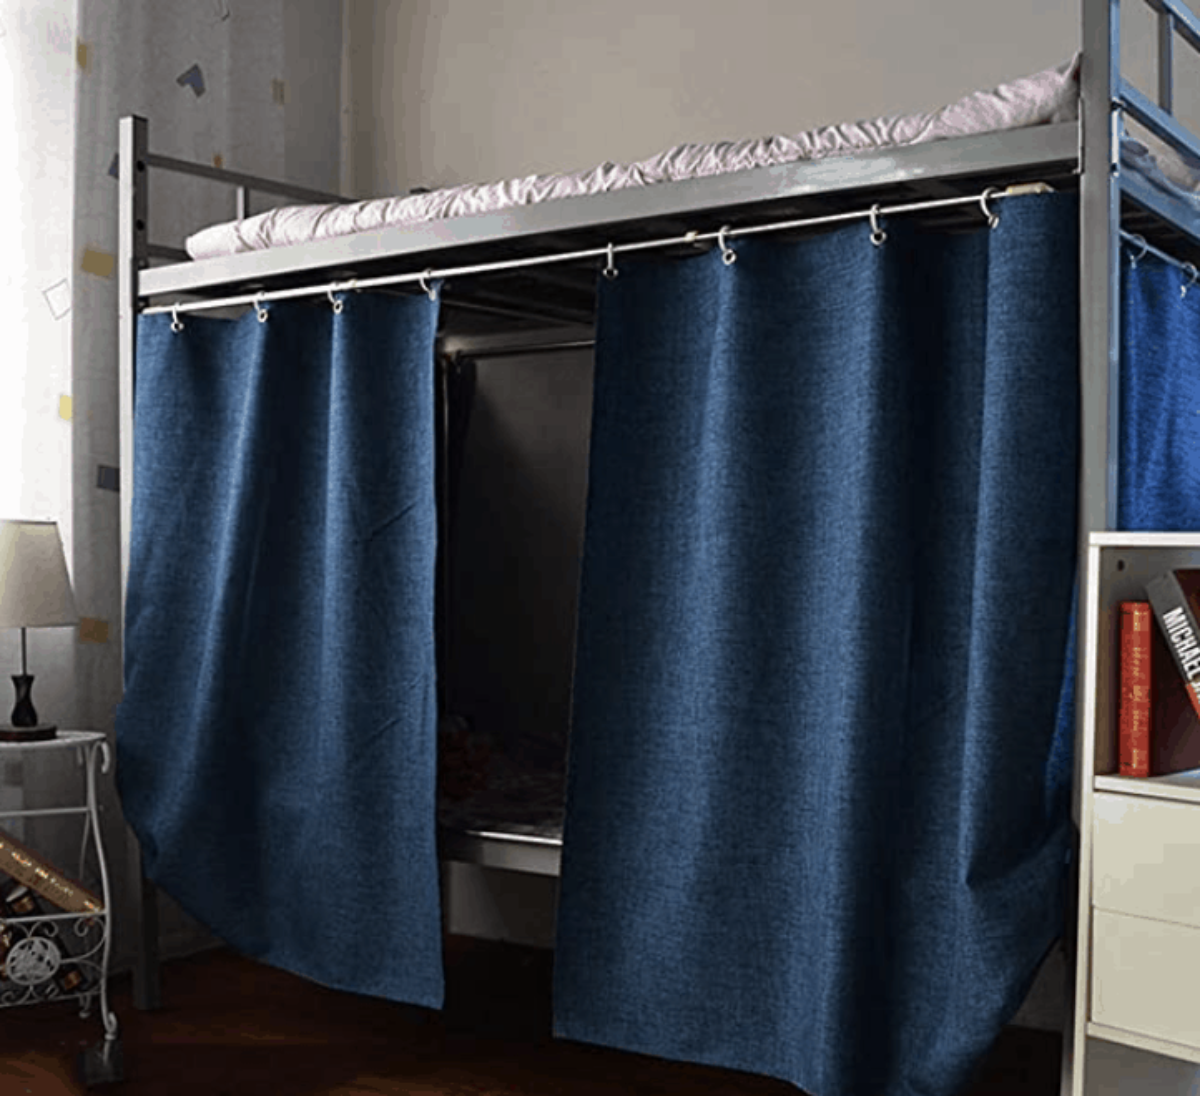 How To Hang Curtains On A Bunk Bed Step By Step W Tips